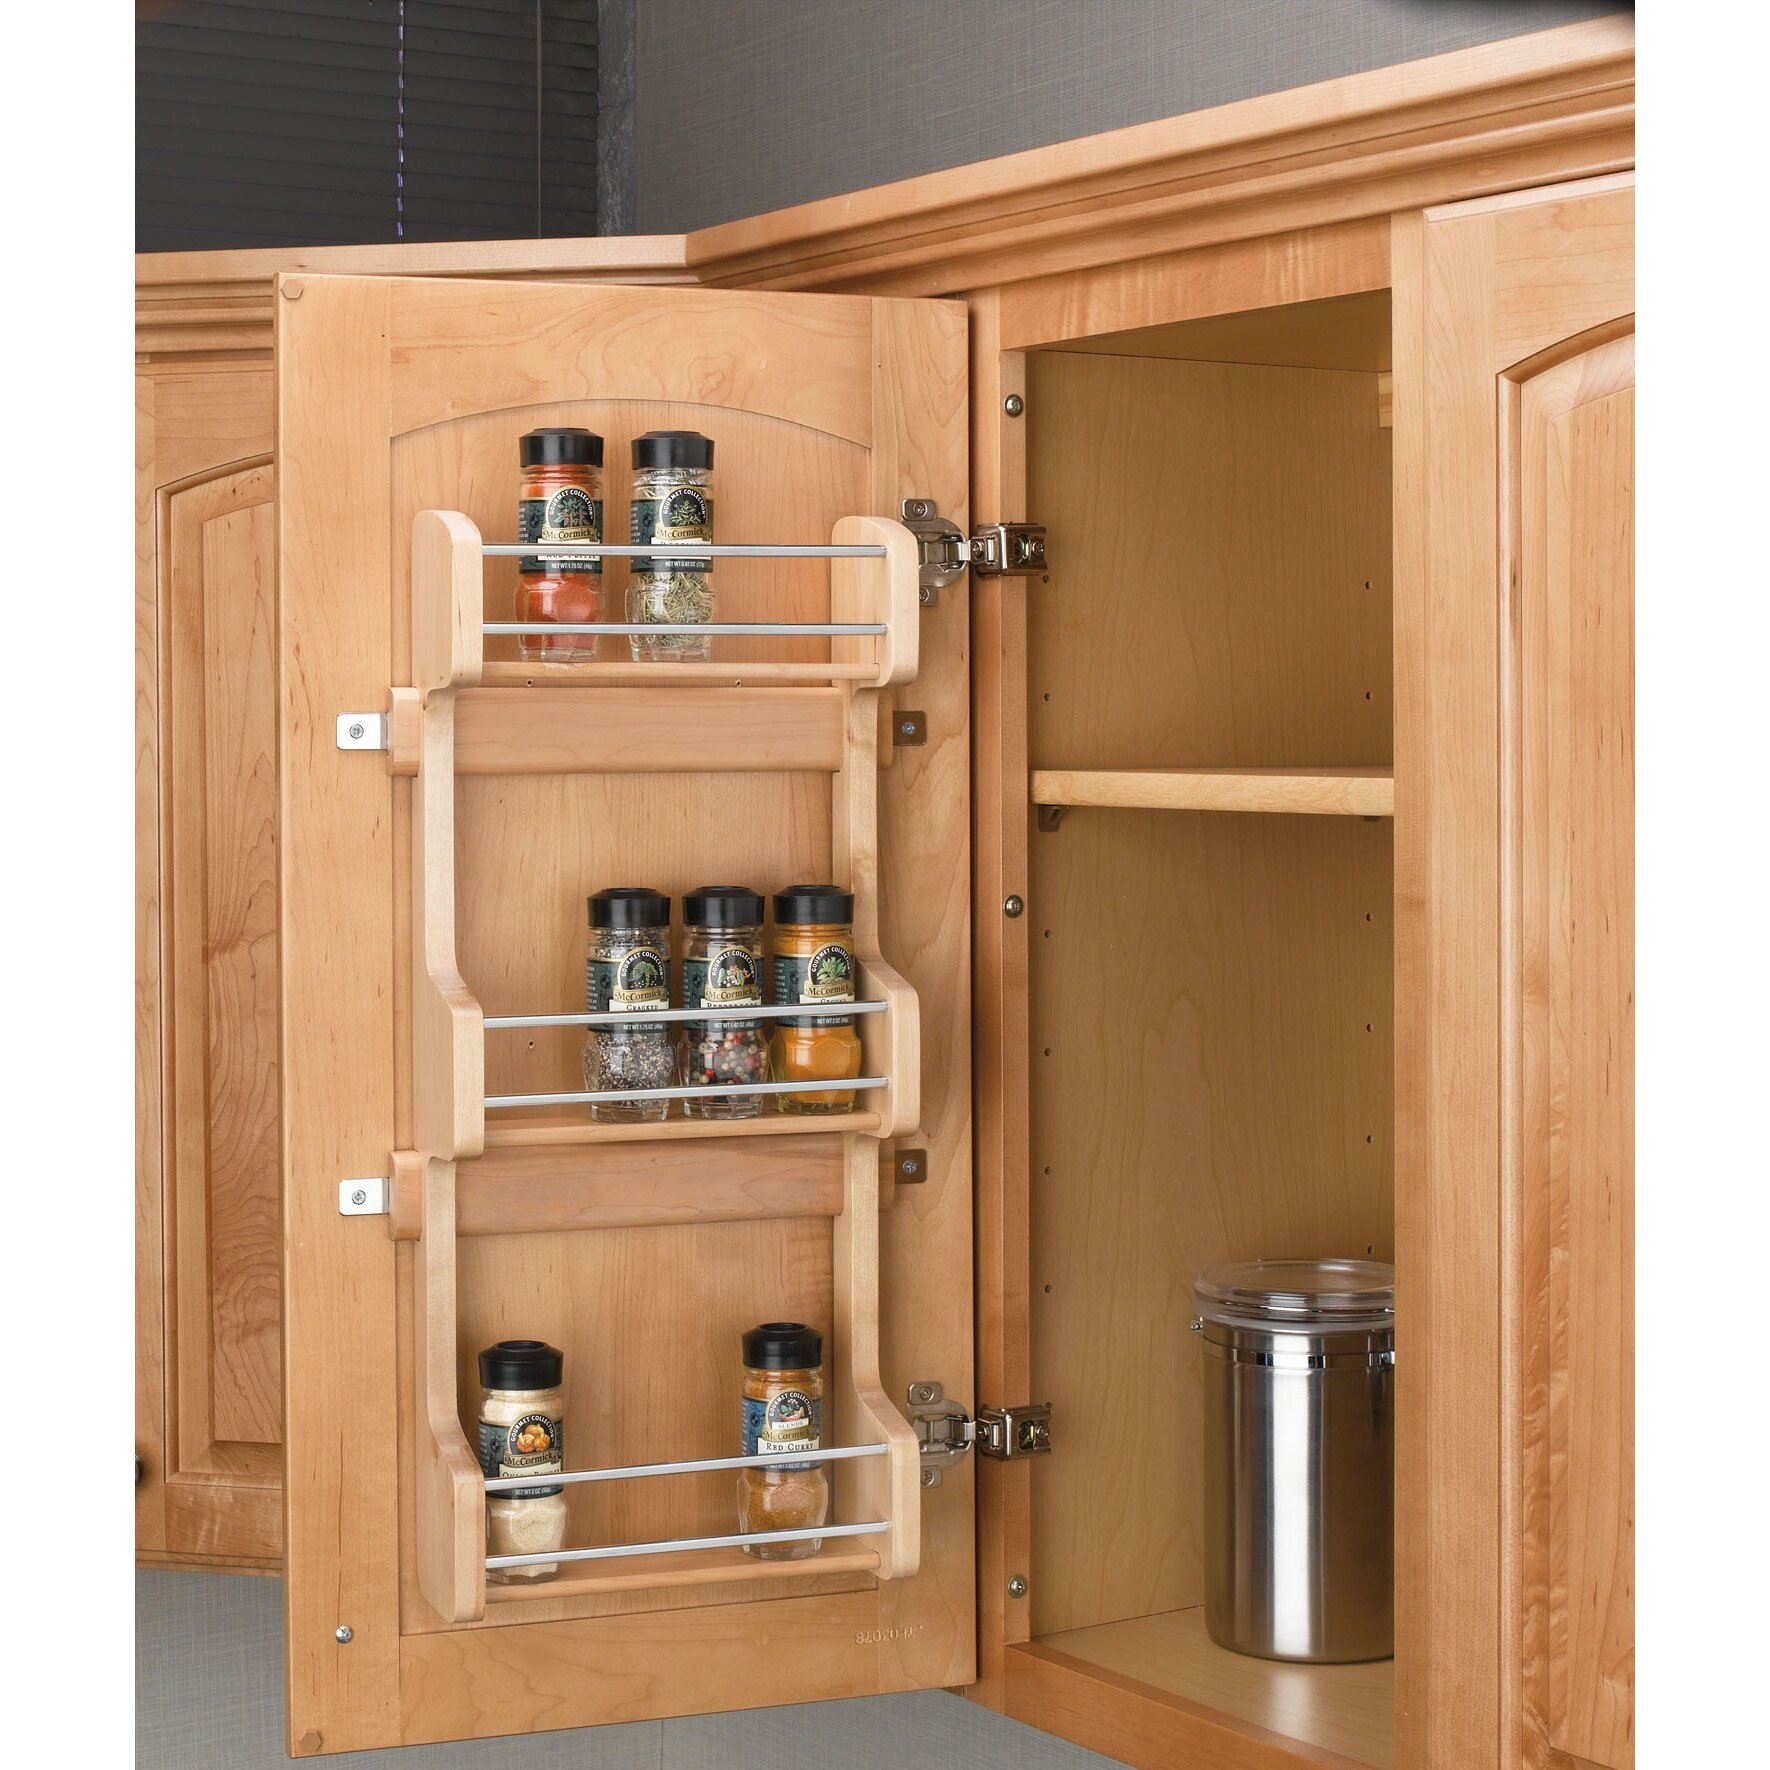 Spice Rack For Kitchen Cabinets: Rev-A-Shelf Cabinet Door Mount 3 Shelf Spice Rack